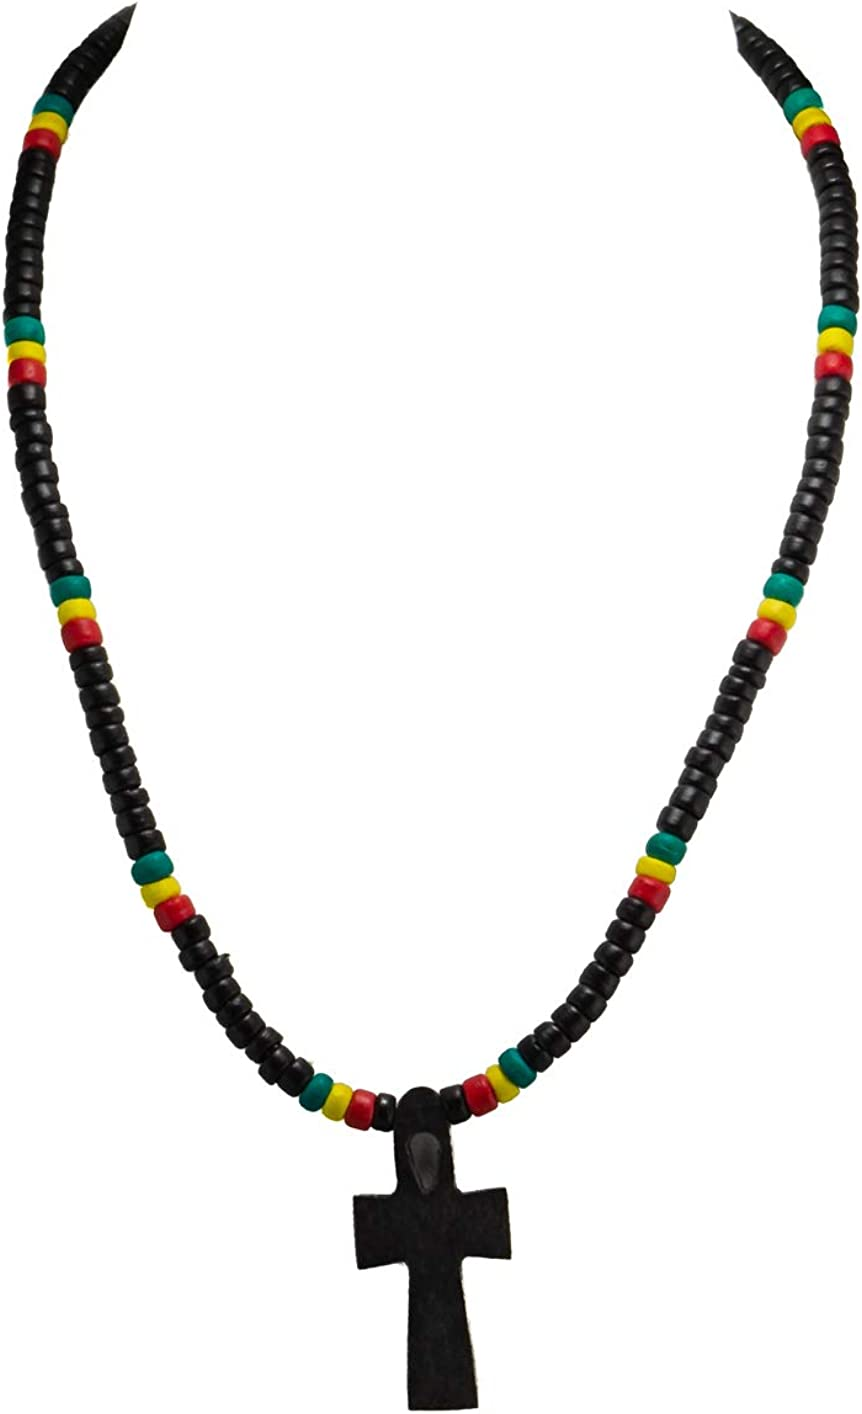 BlueRica Black Wood Ankh Cross of Life Pendant on Rasta Coconut Beads Necklace